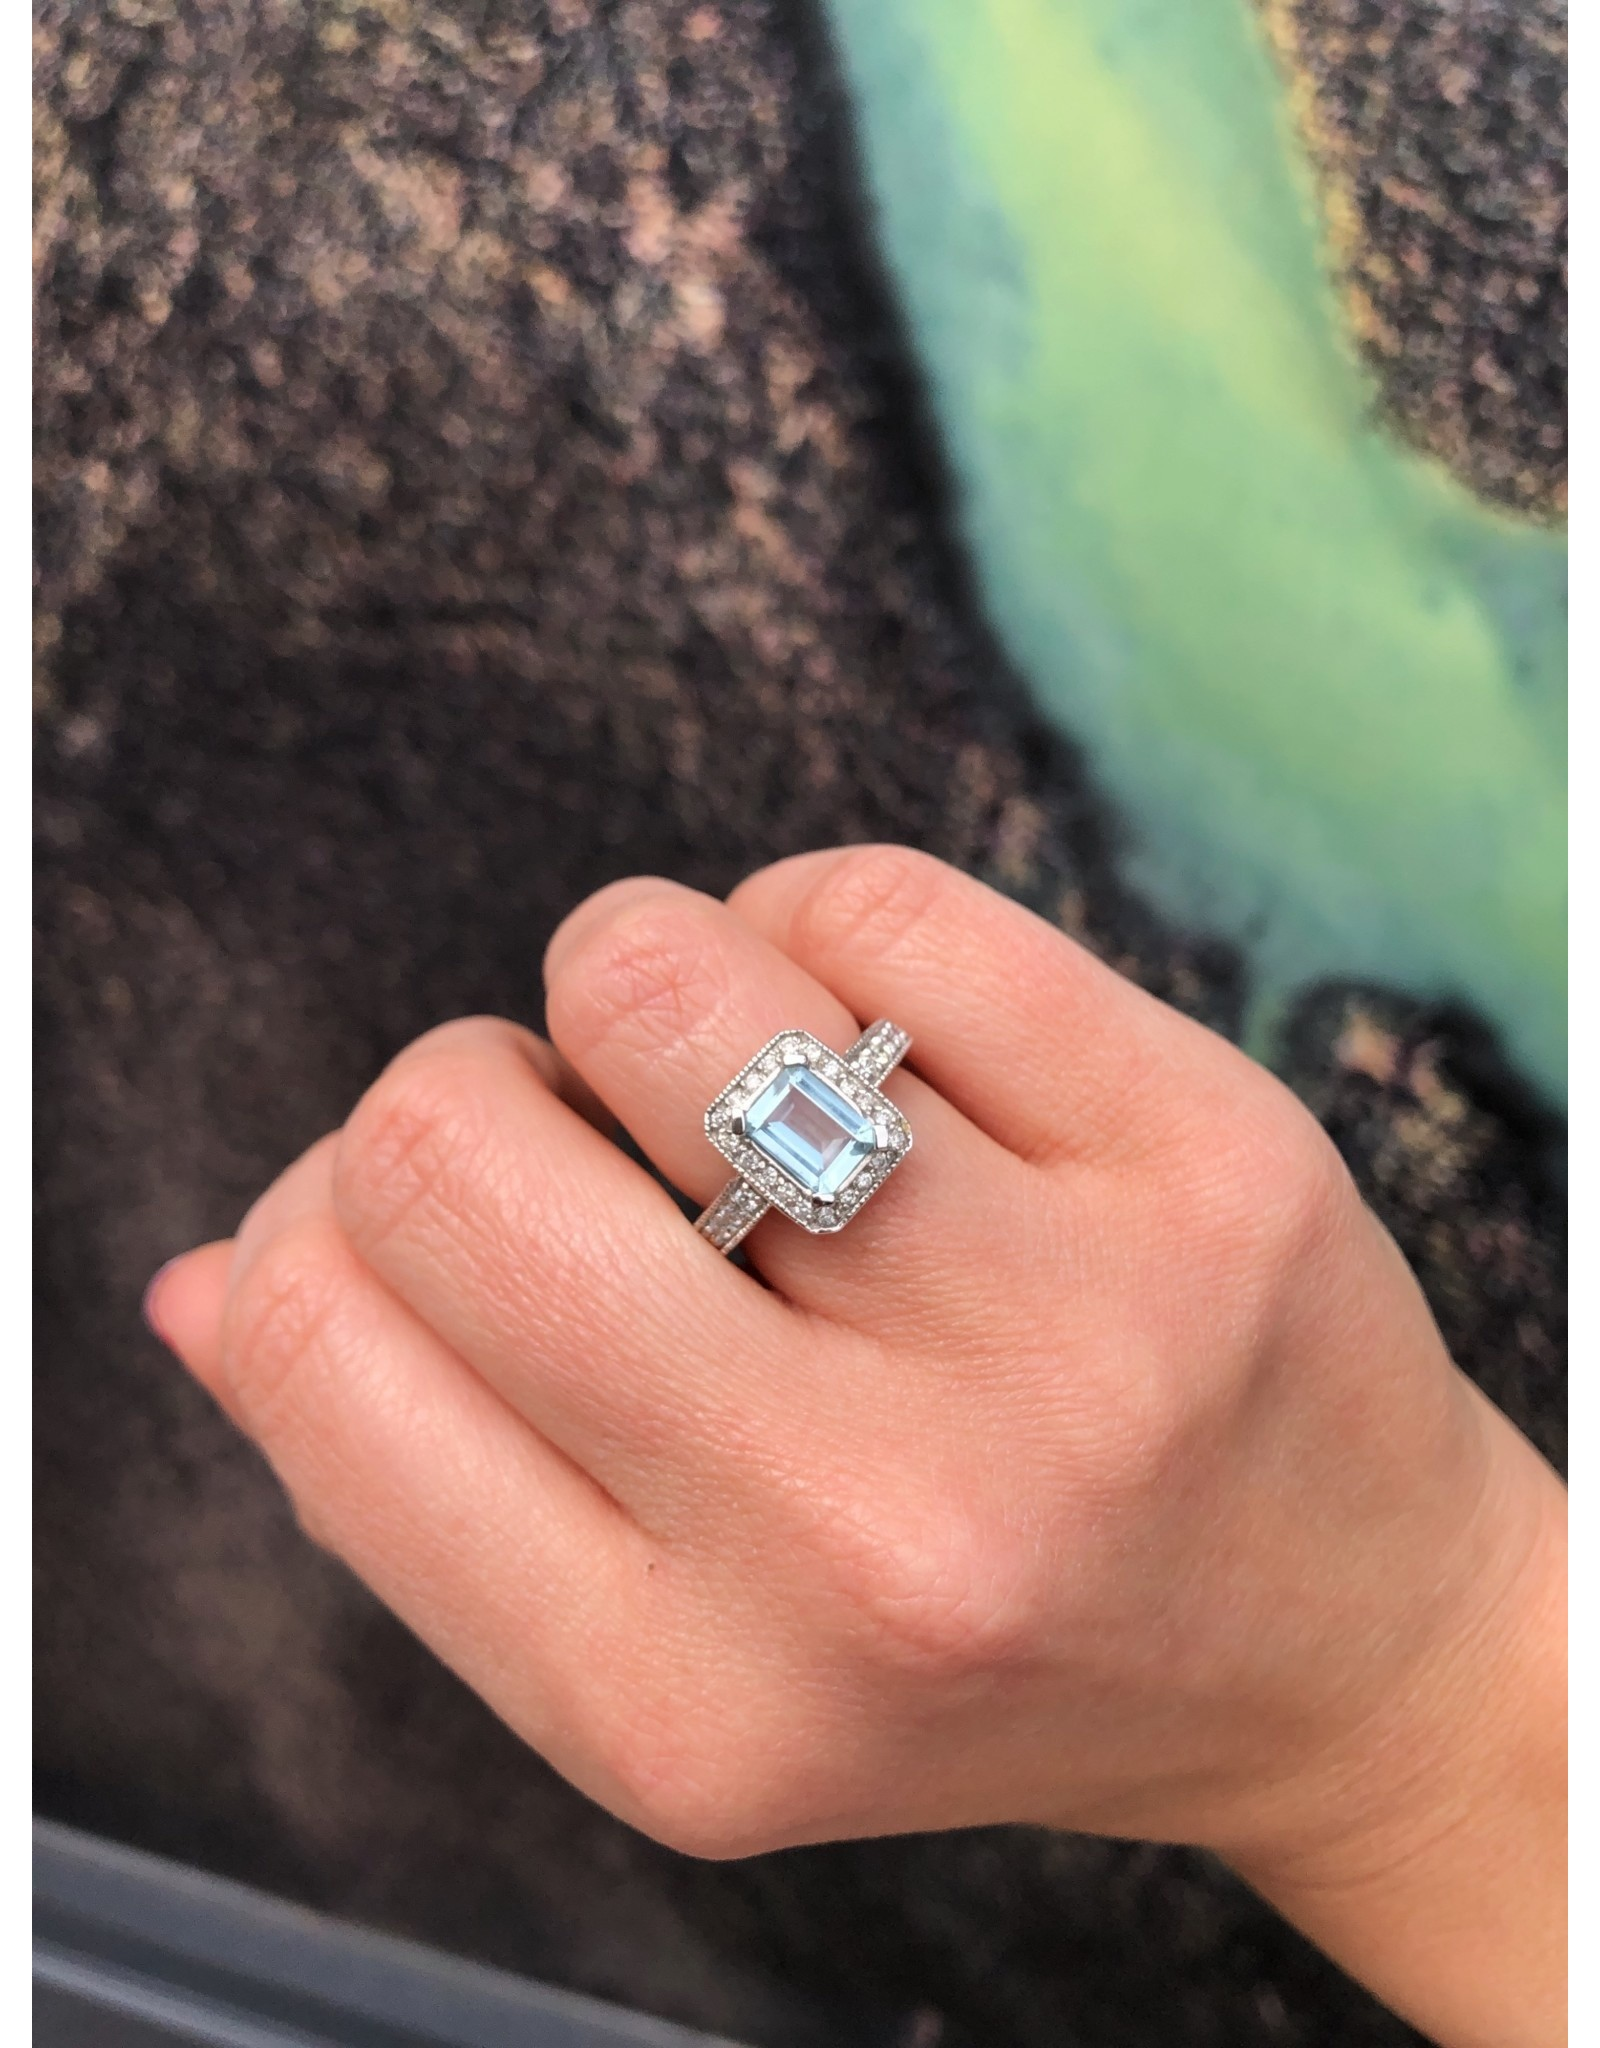 14K White Gold Aquamarine and Diamond Ring, AQ: Appx 1.45cts, D: 0.71cts